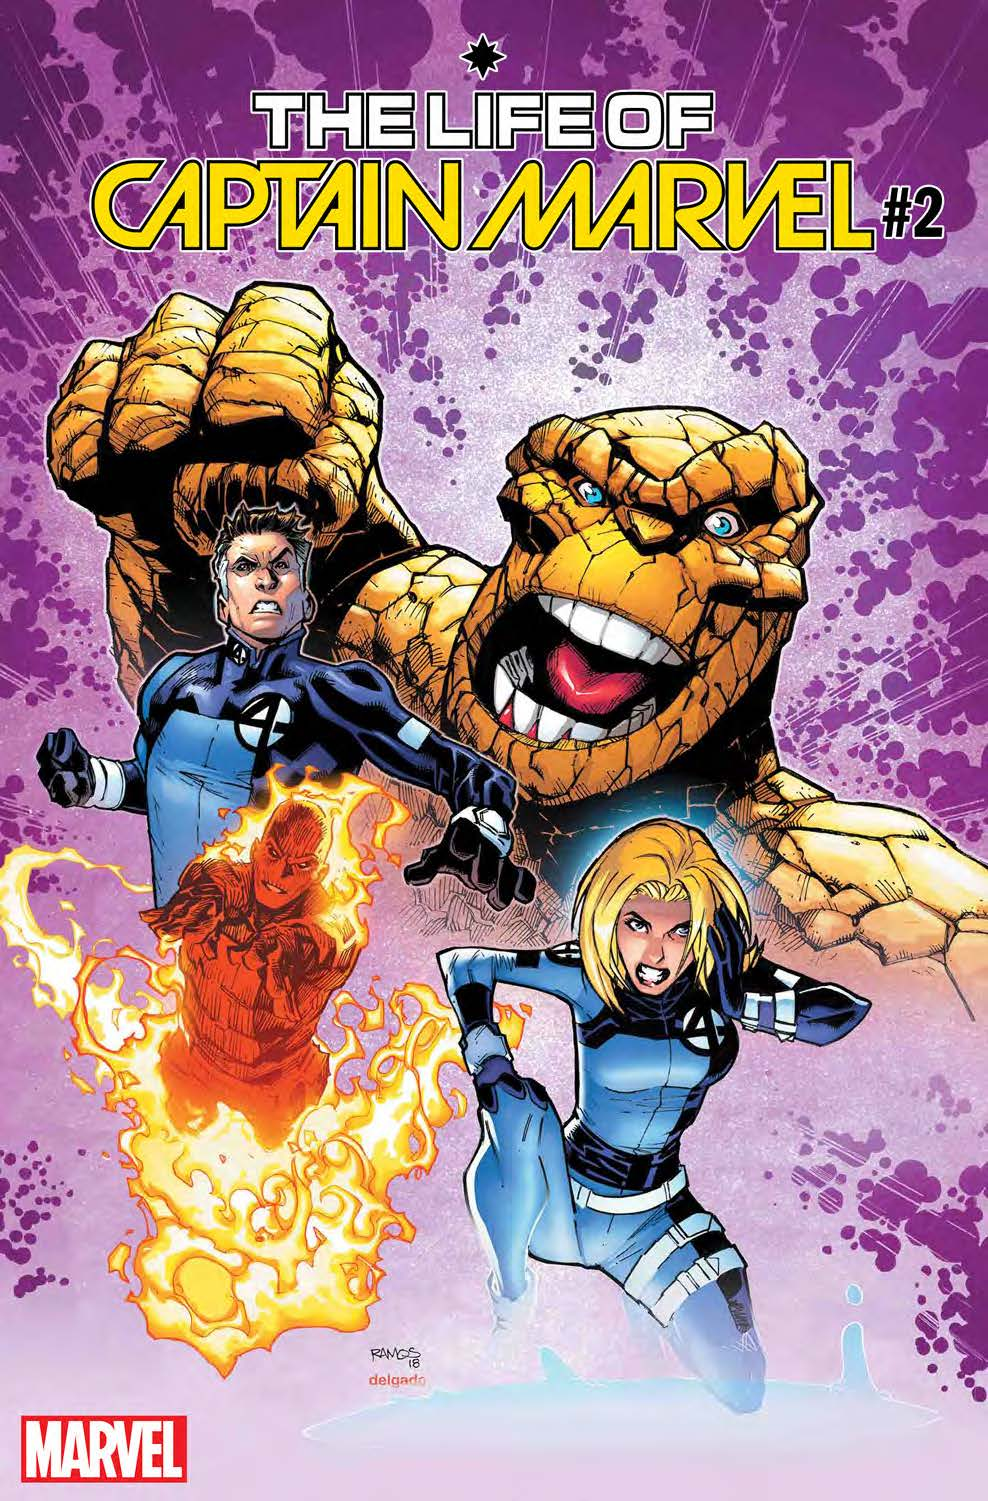 The Return Of The Fantastic Four marvel variant